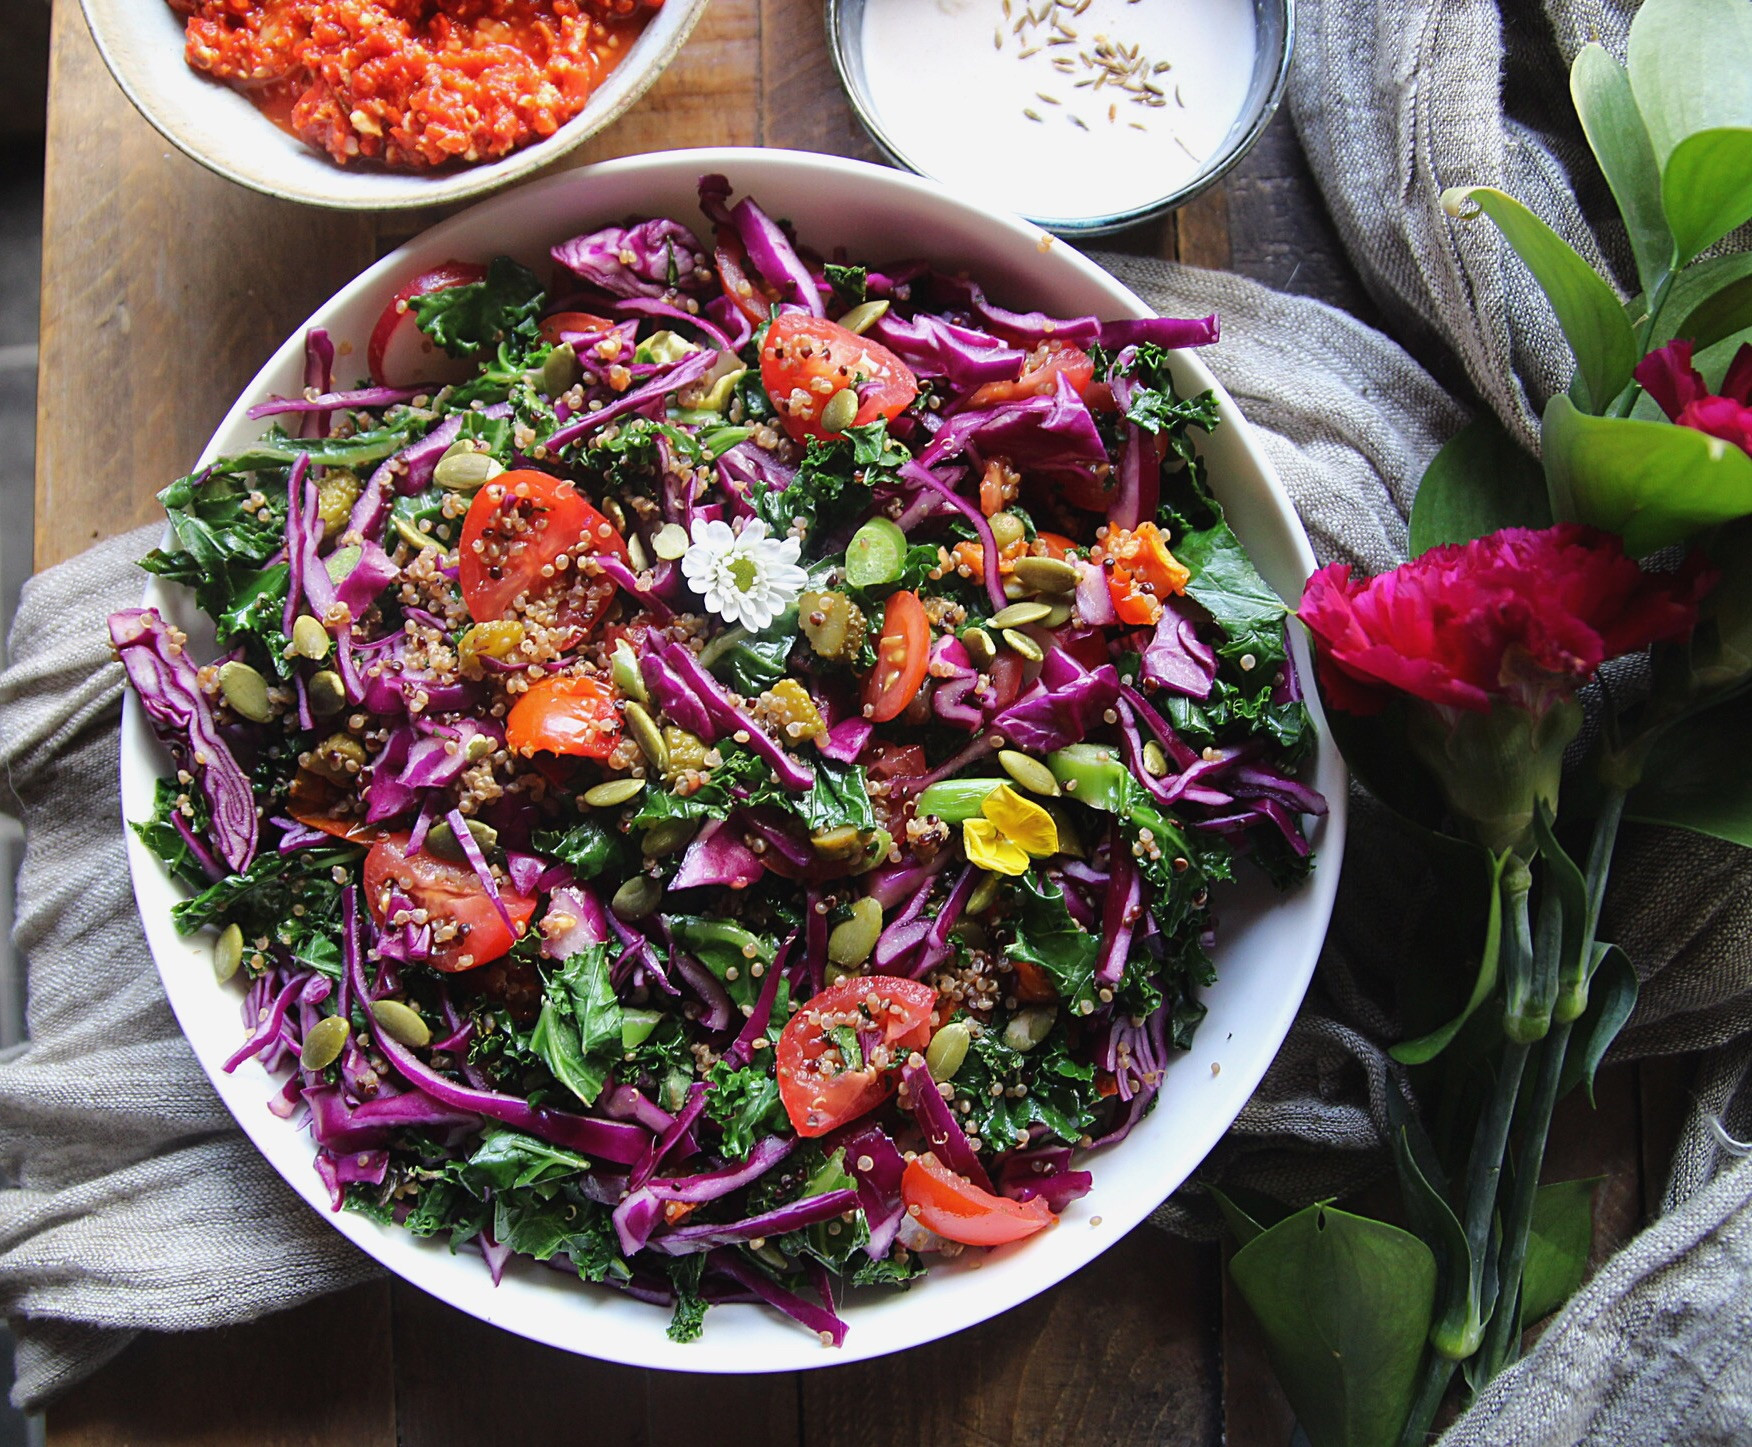 Red Cabbage Salad Recipes  Super Healthy Kale and Red Cabbage Salad